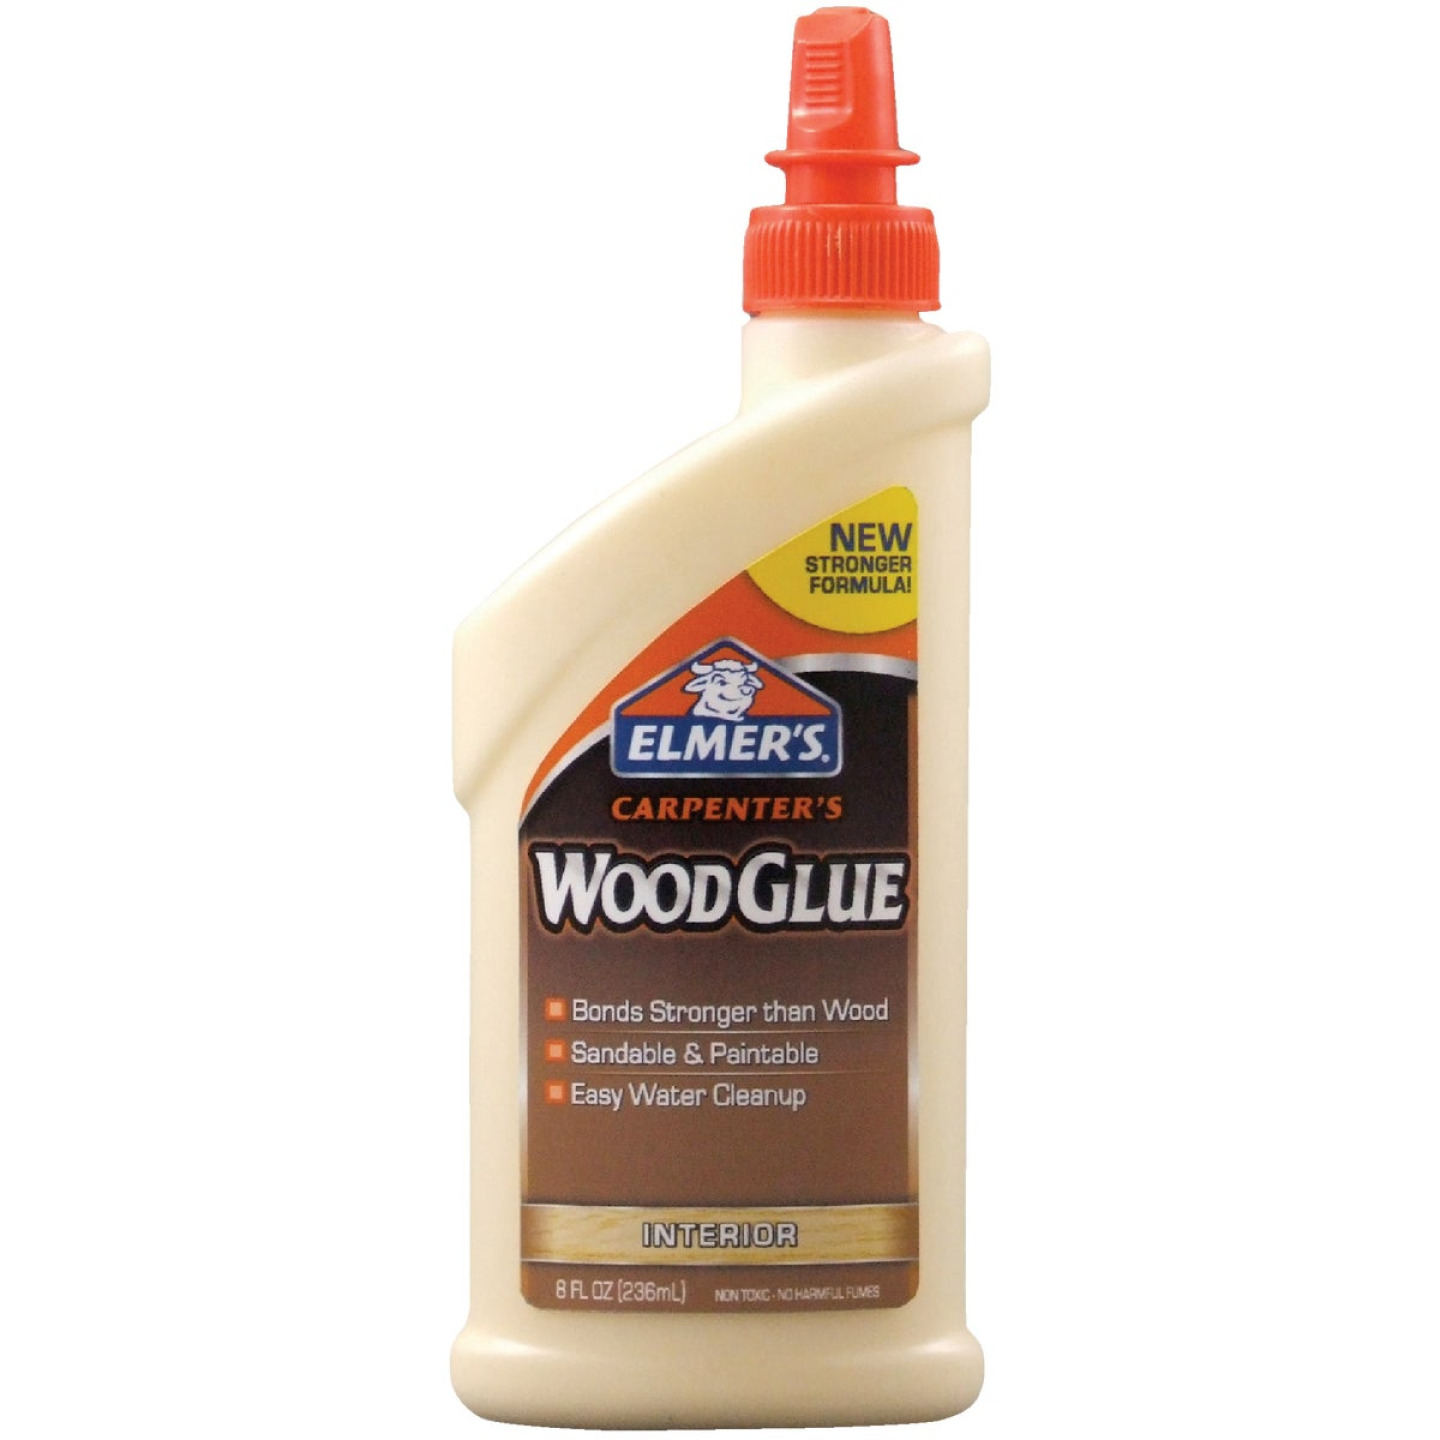 Elmer's Carpenter's 8 Oz. Wood Glue Image 1